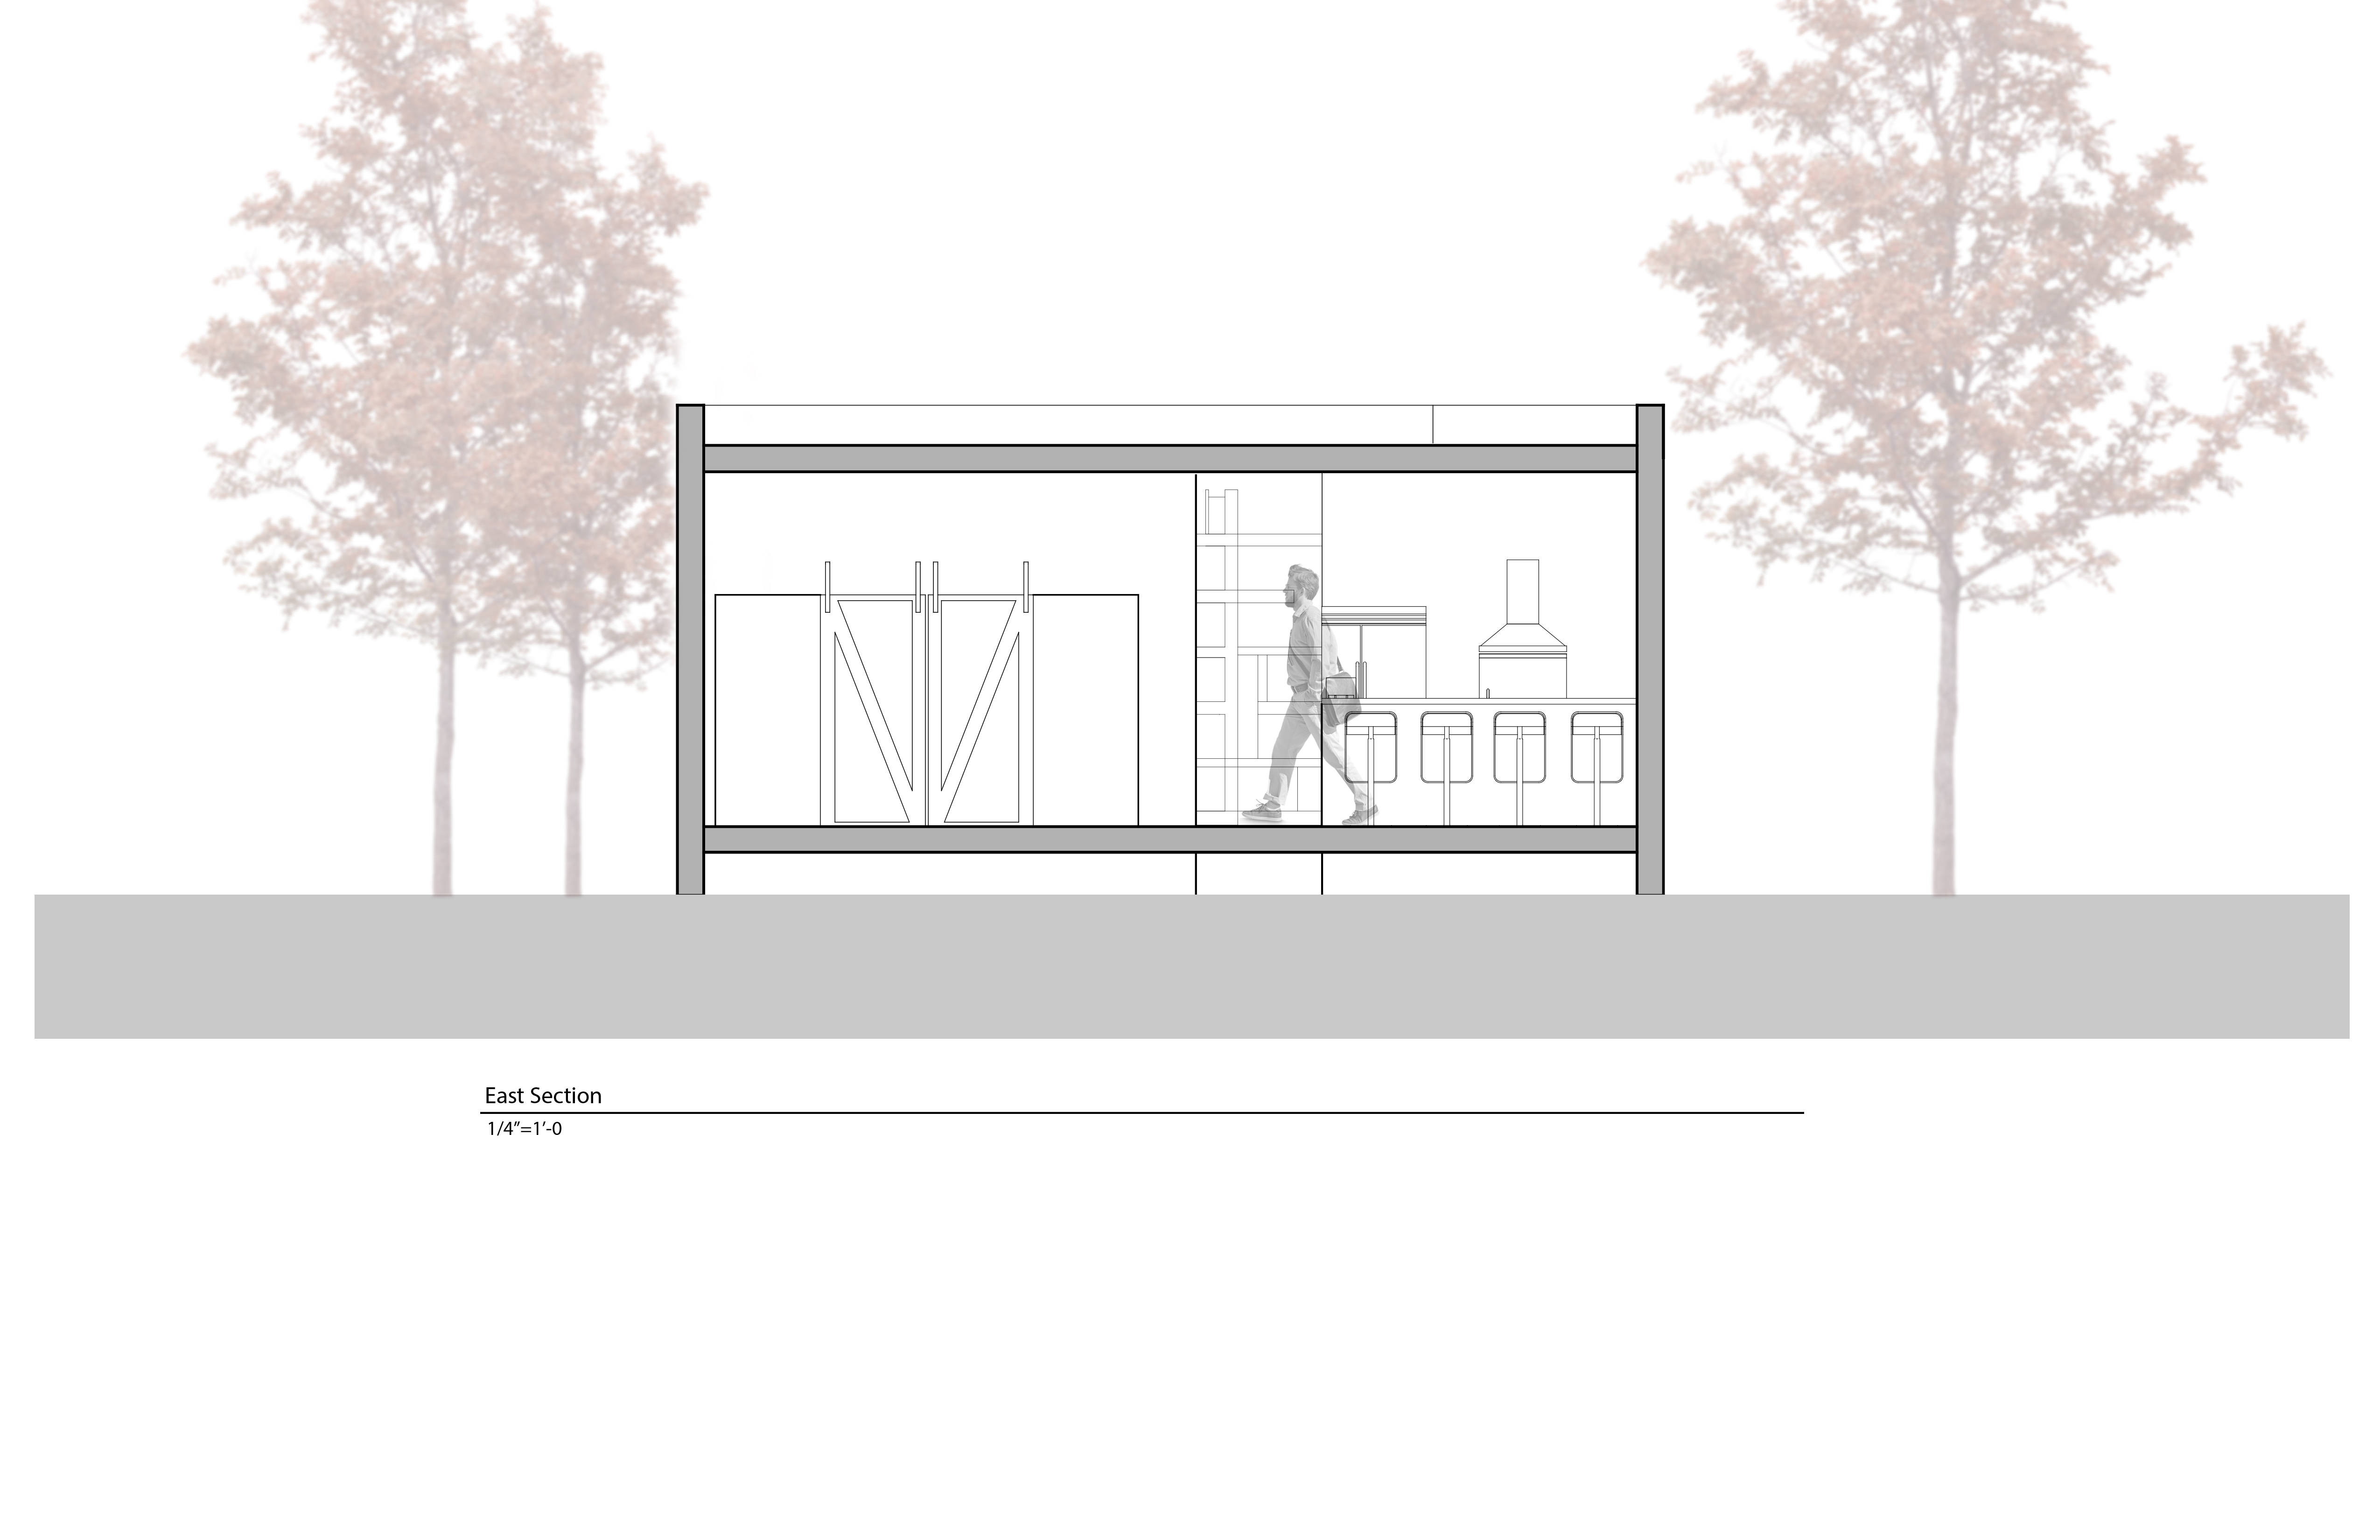 Section of Off Grid Housing Project